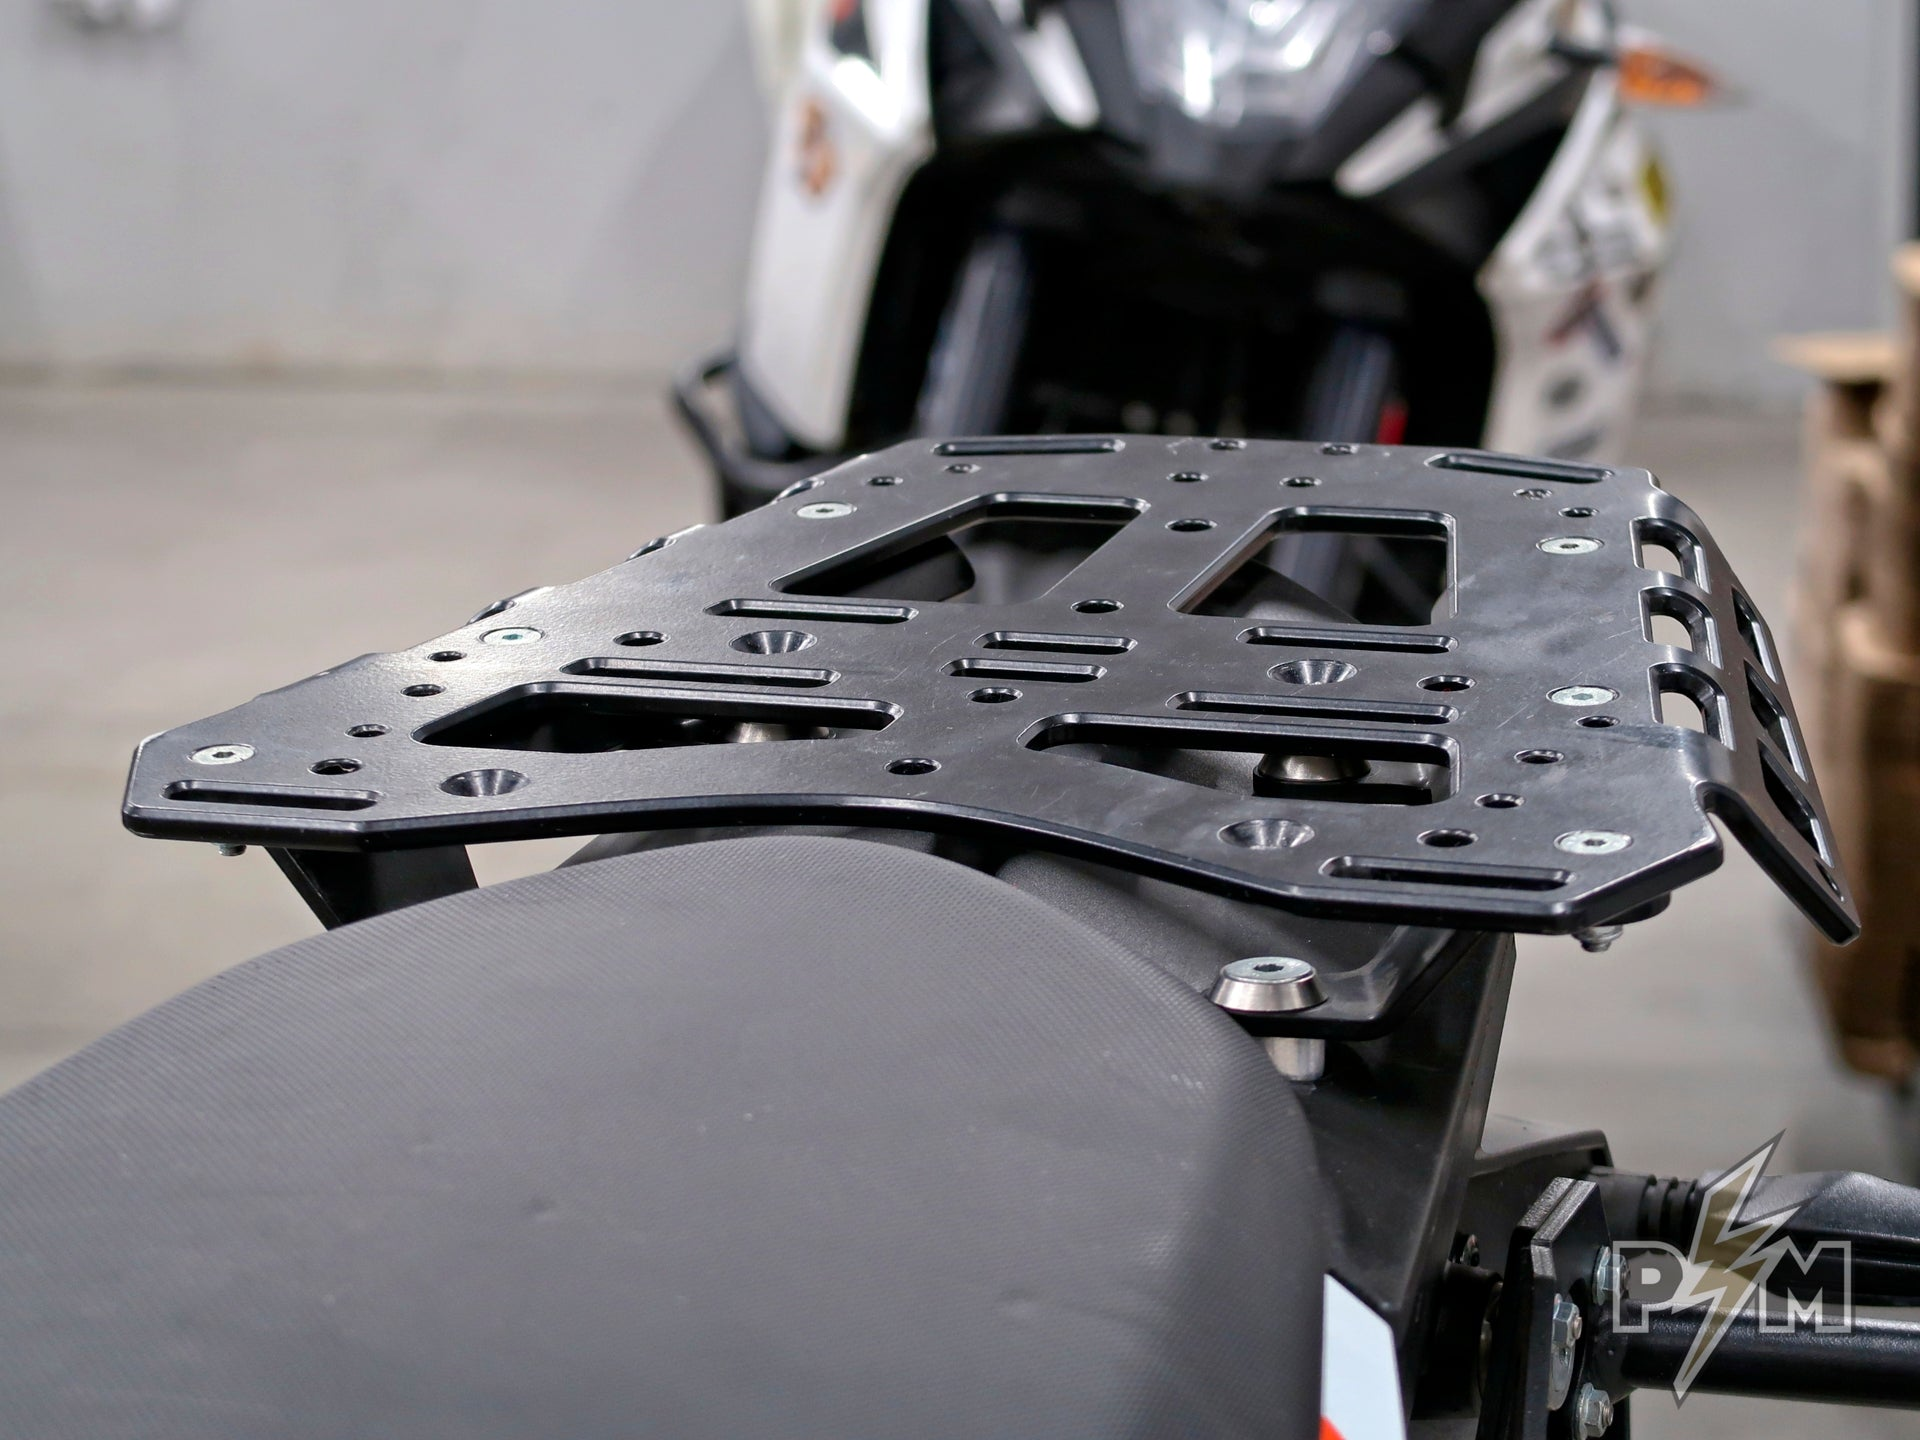 Subplate for KTM 790/1X90 Top luggage rack - 1X90 version